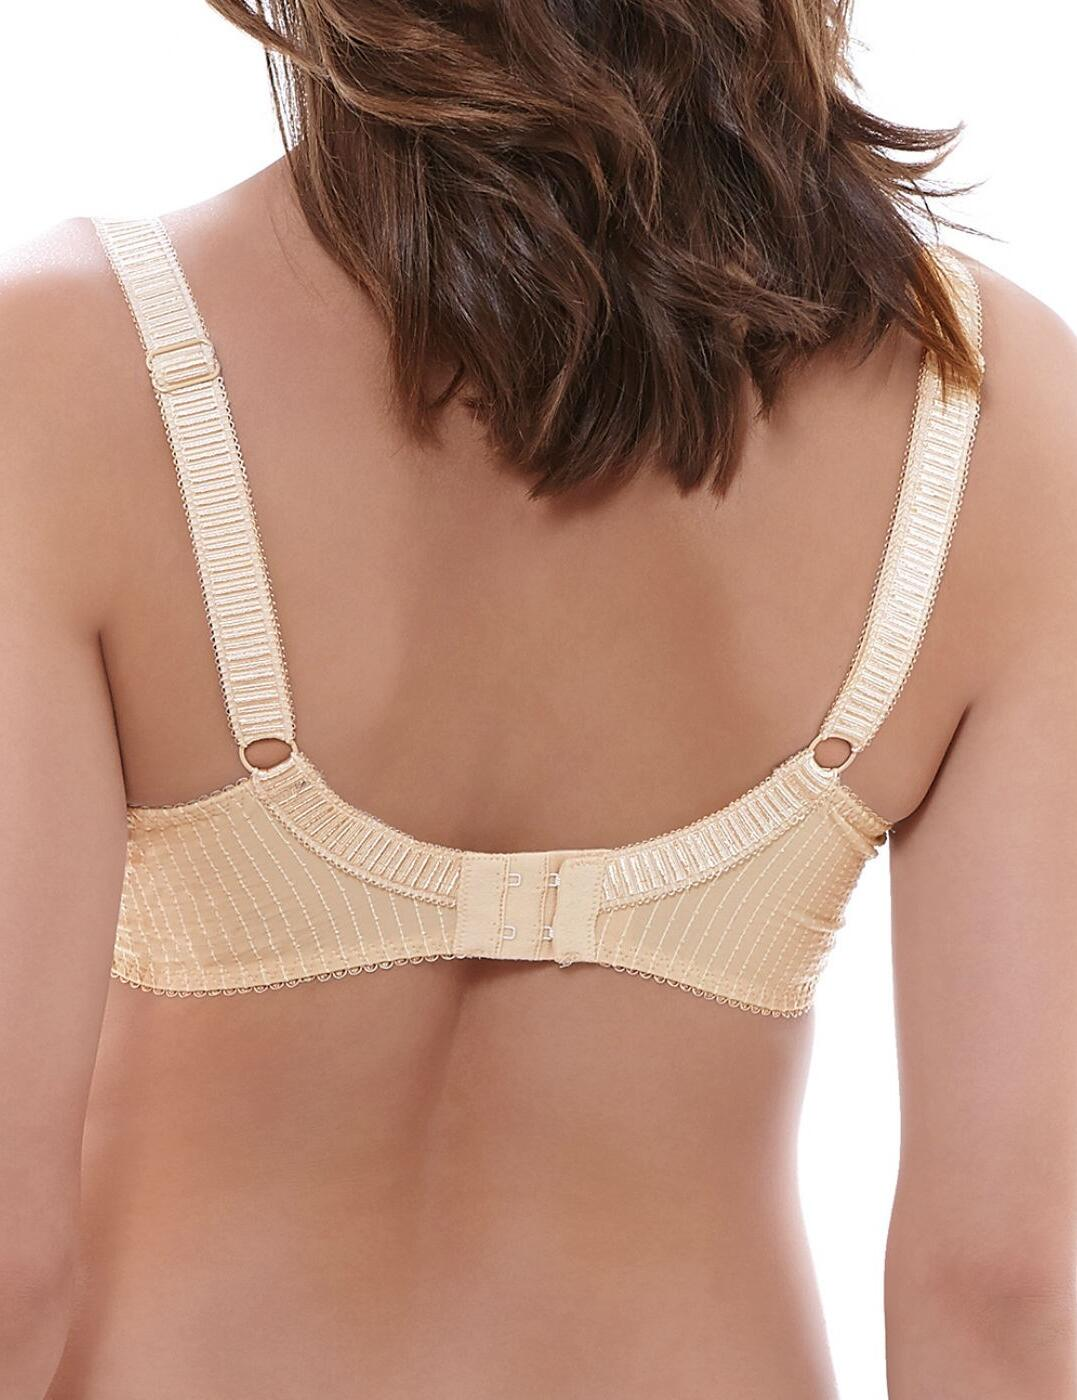 Fantasie-Zoe-Side-Support-Bra-Underwired-Non-Padded-9262-New-Womens-Lingerie thumbnail 14